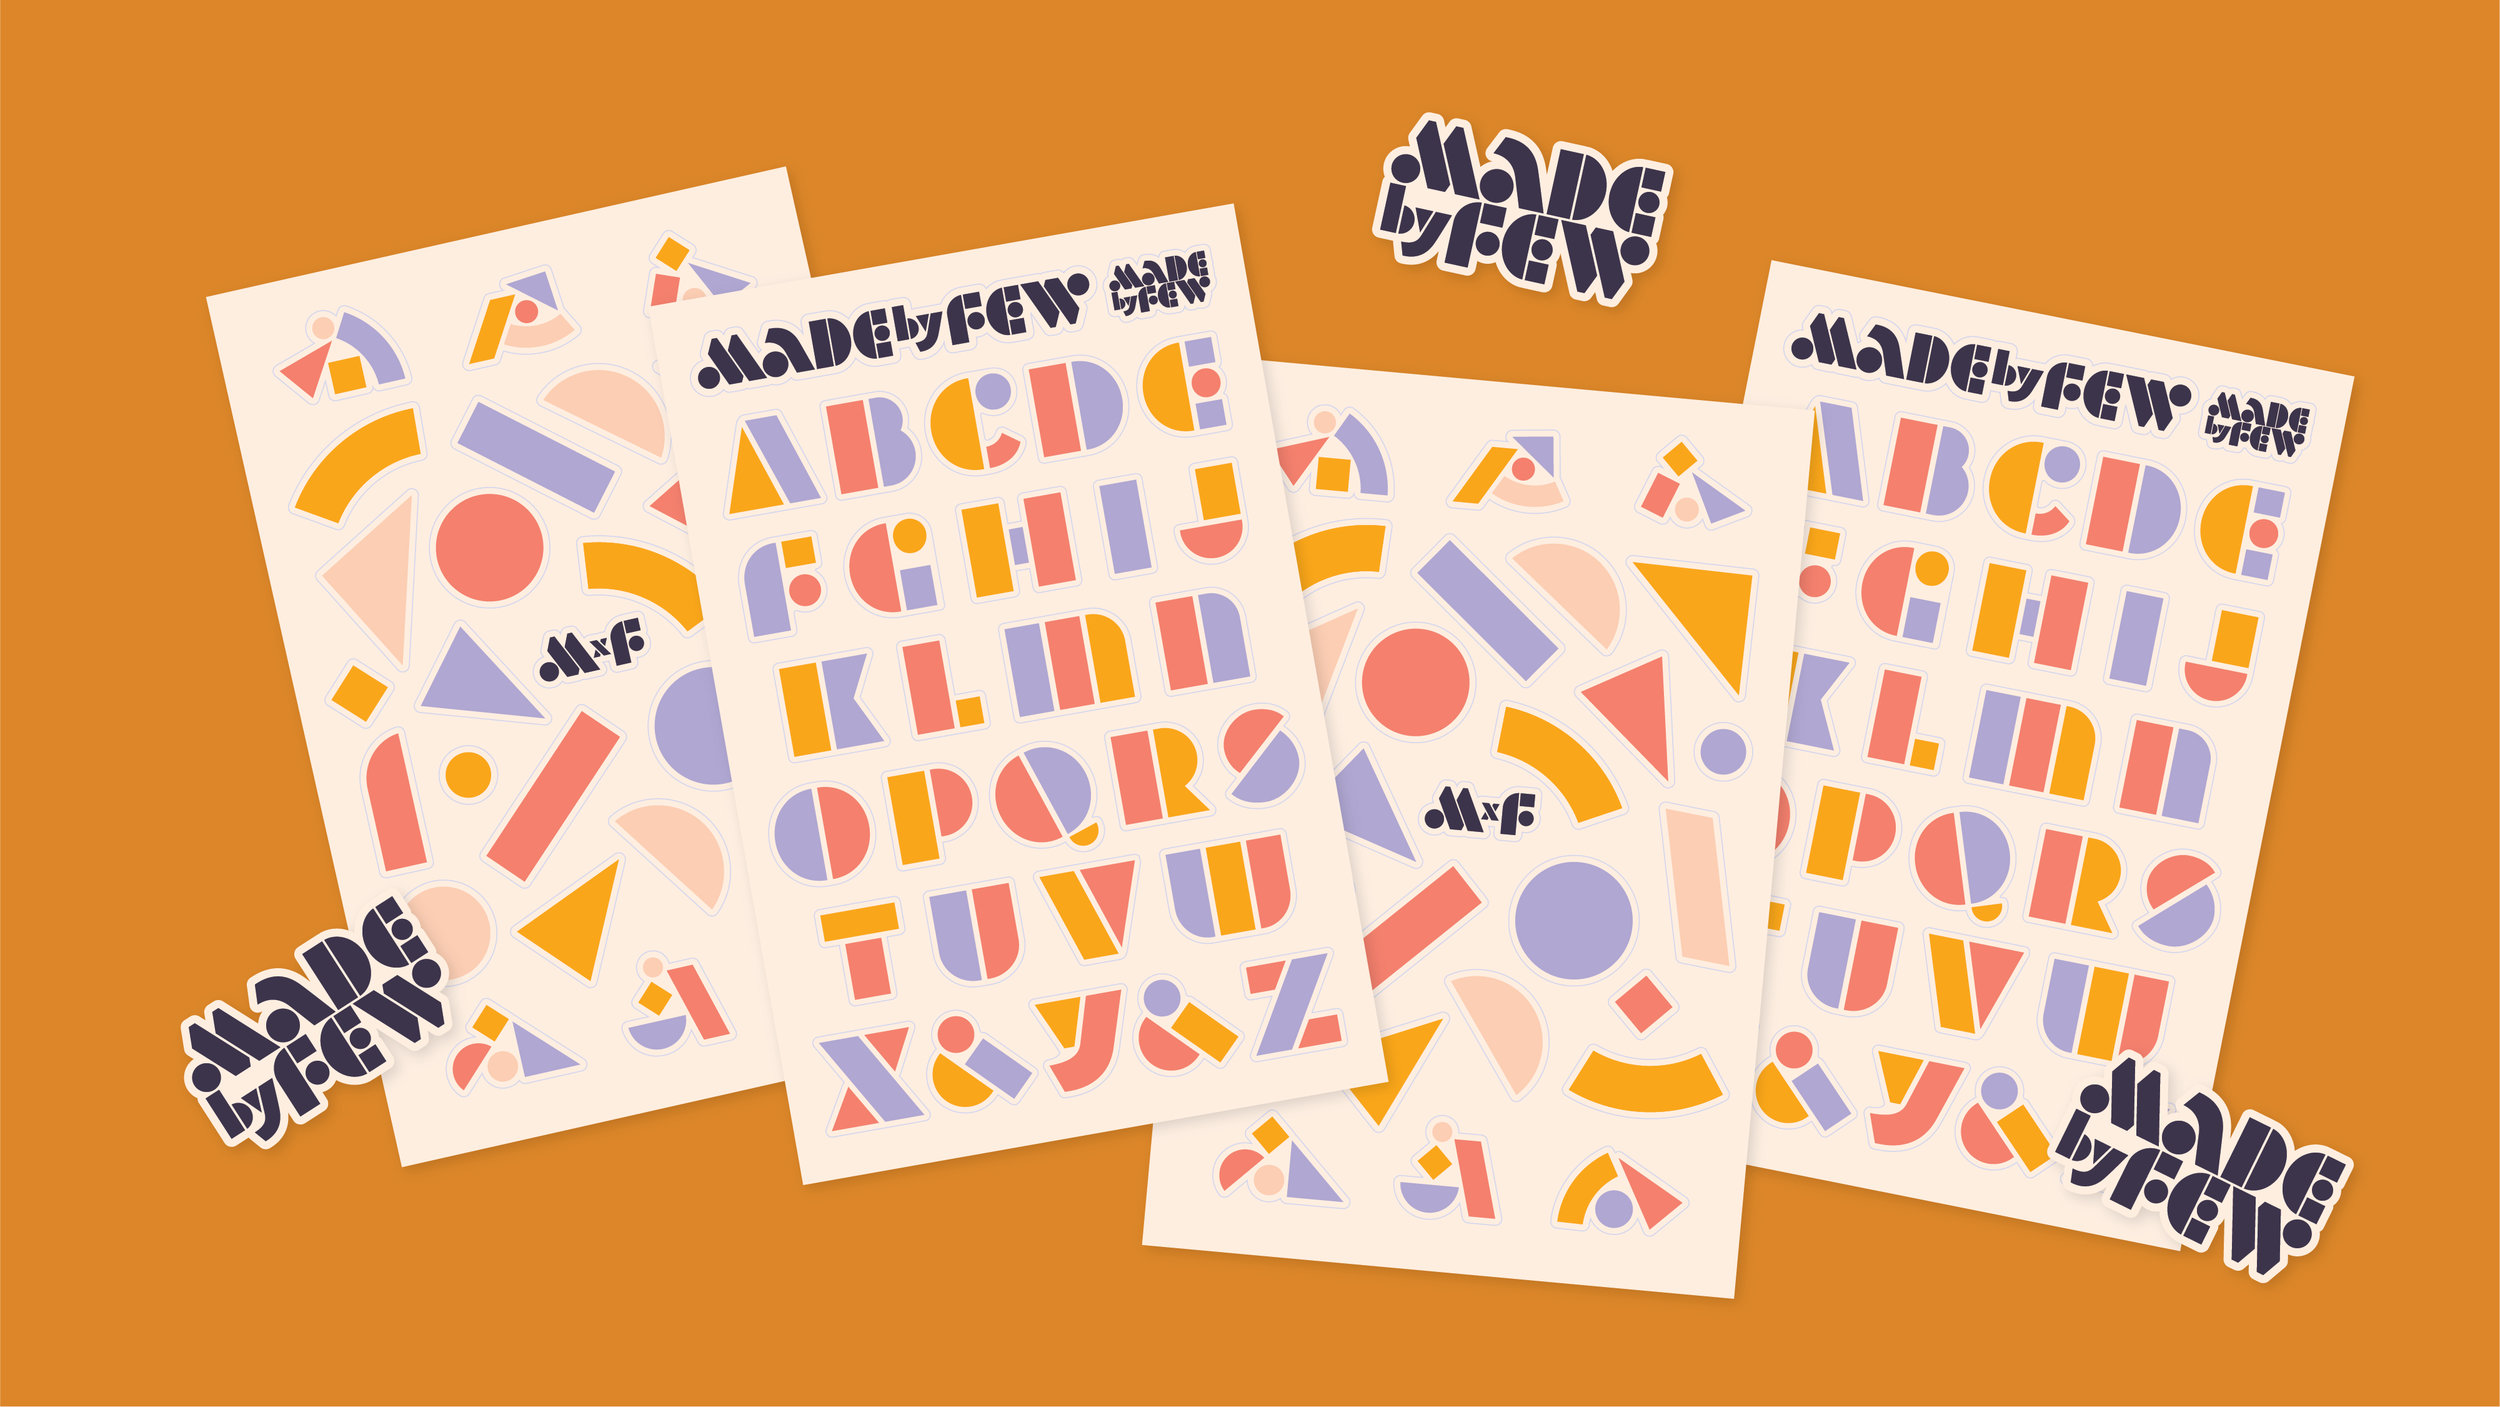 MBF_stickersheet_Artboard 2 copy 2.jpg